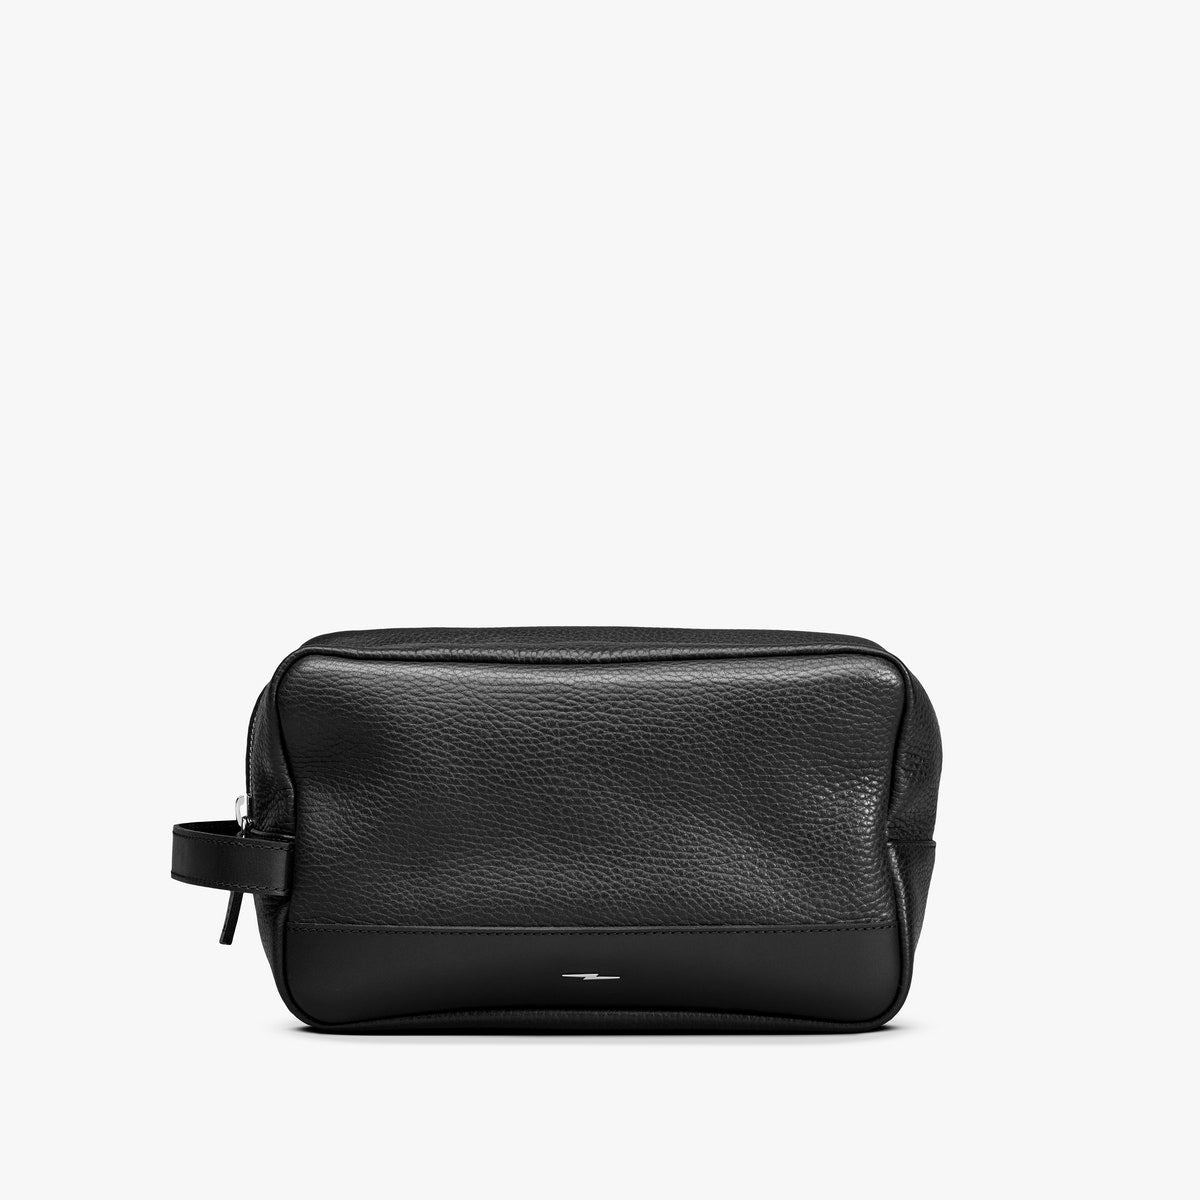 Shinola Zip Travel Kit